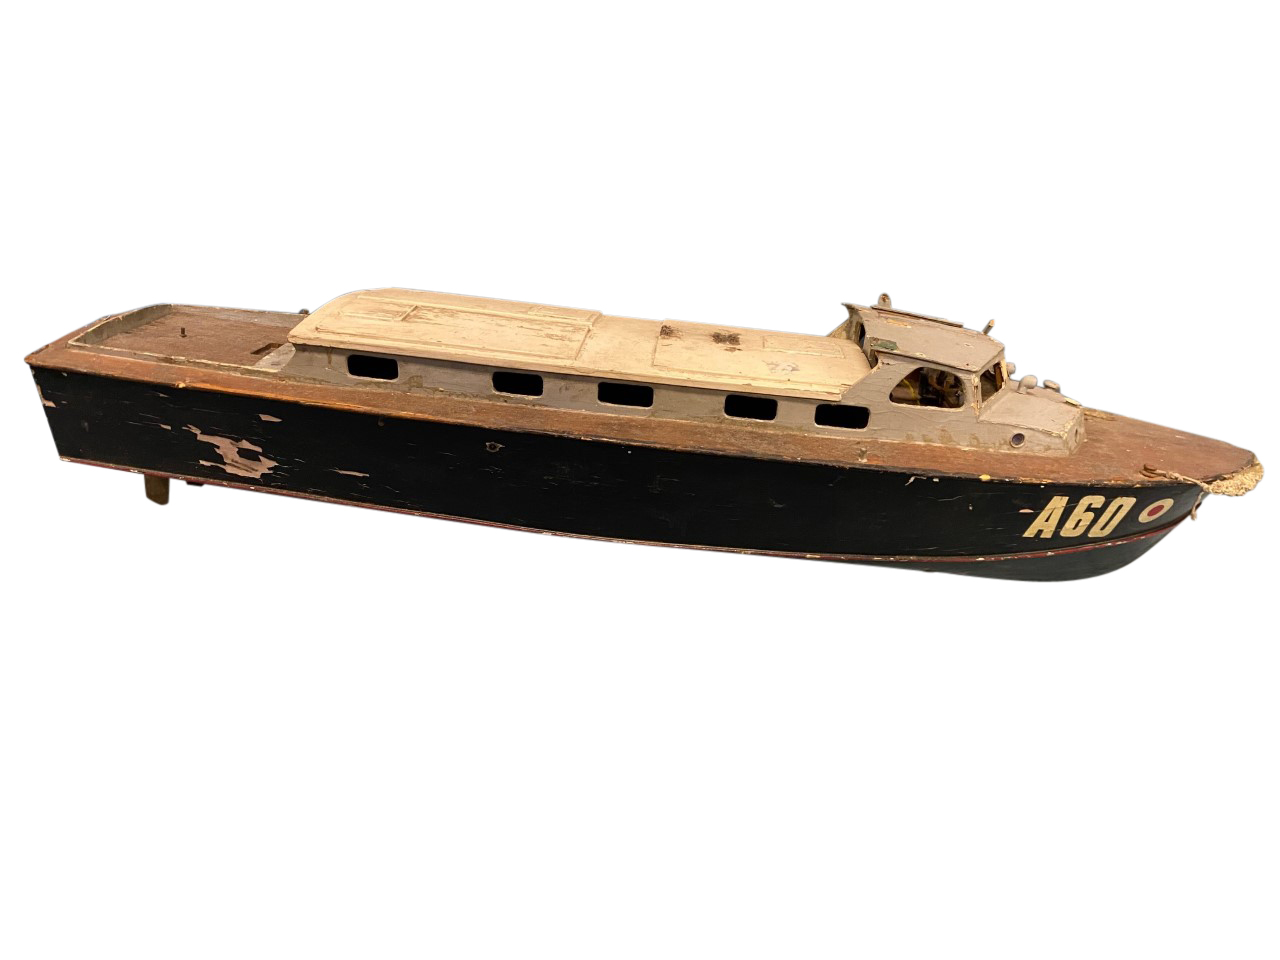 A C20th handbuilt naval type cruiser A60 with hardwood deck and painted cabin, the vessel built